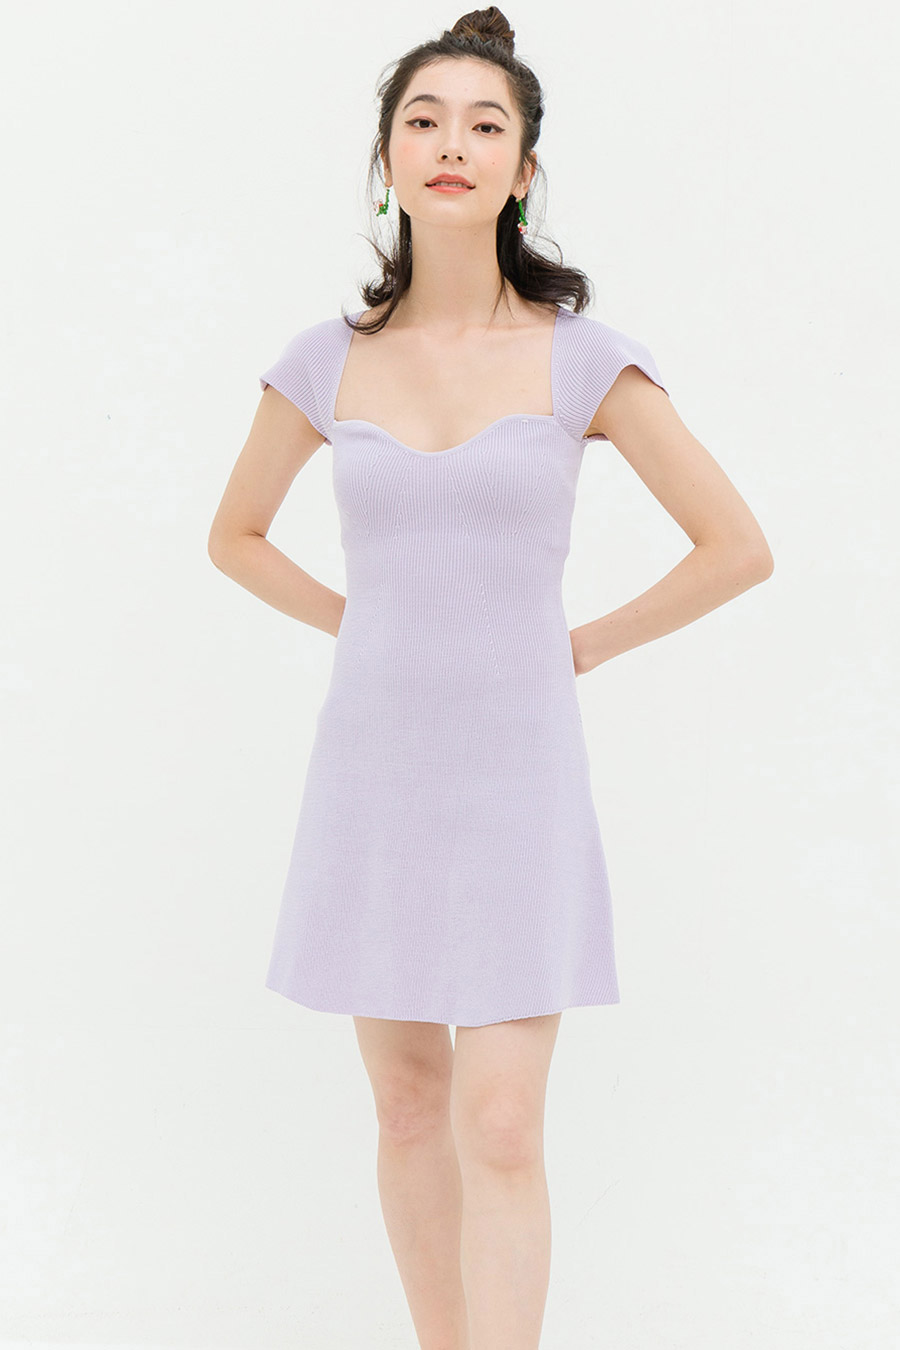 KAISER DRESS - LAVENDER